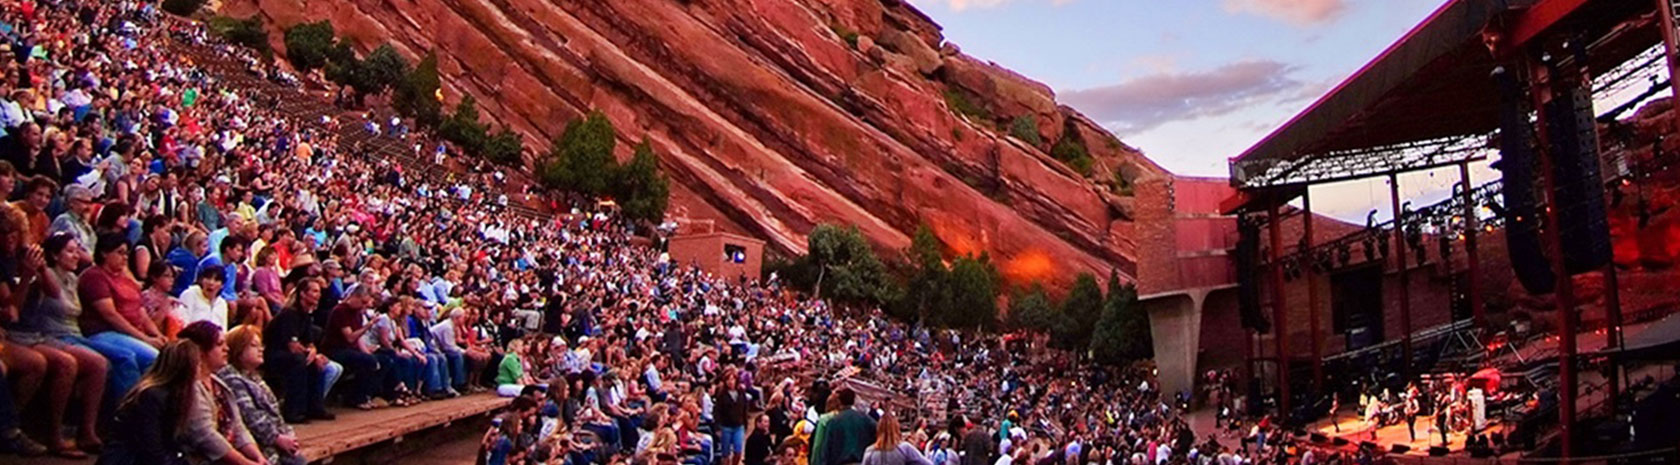 A red rock wall as the side of an arena is the focus with a band playing on the stage with a full crowd in front